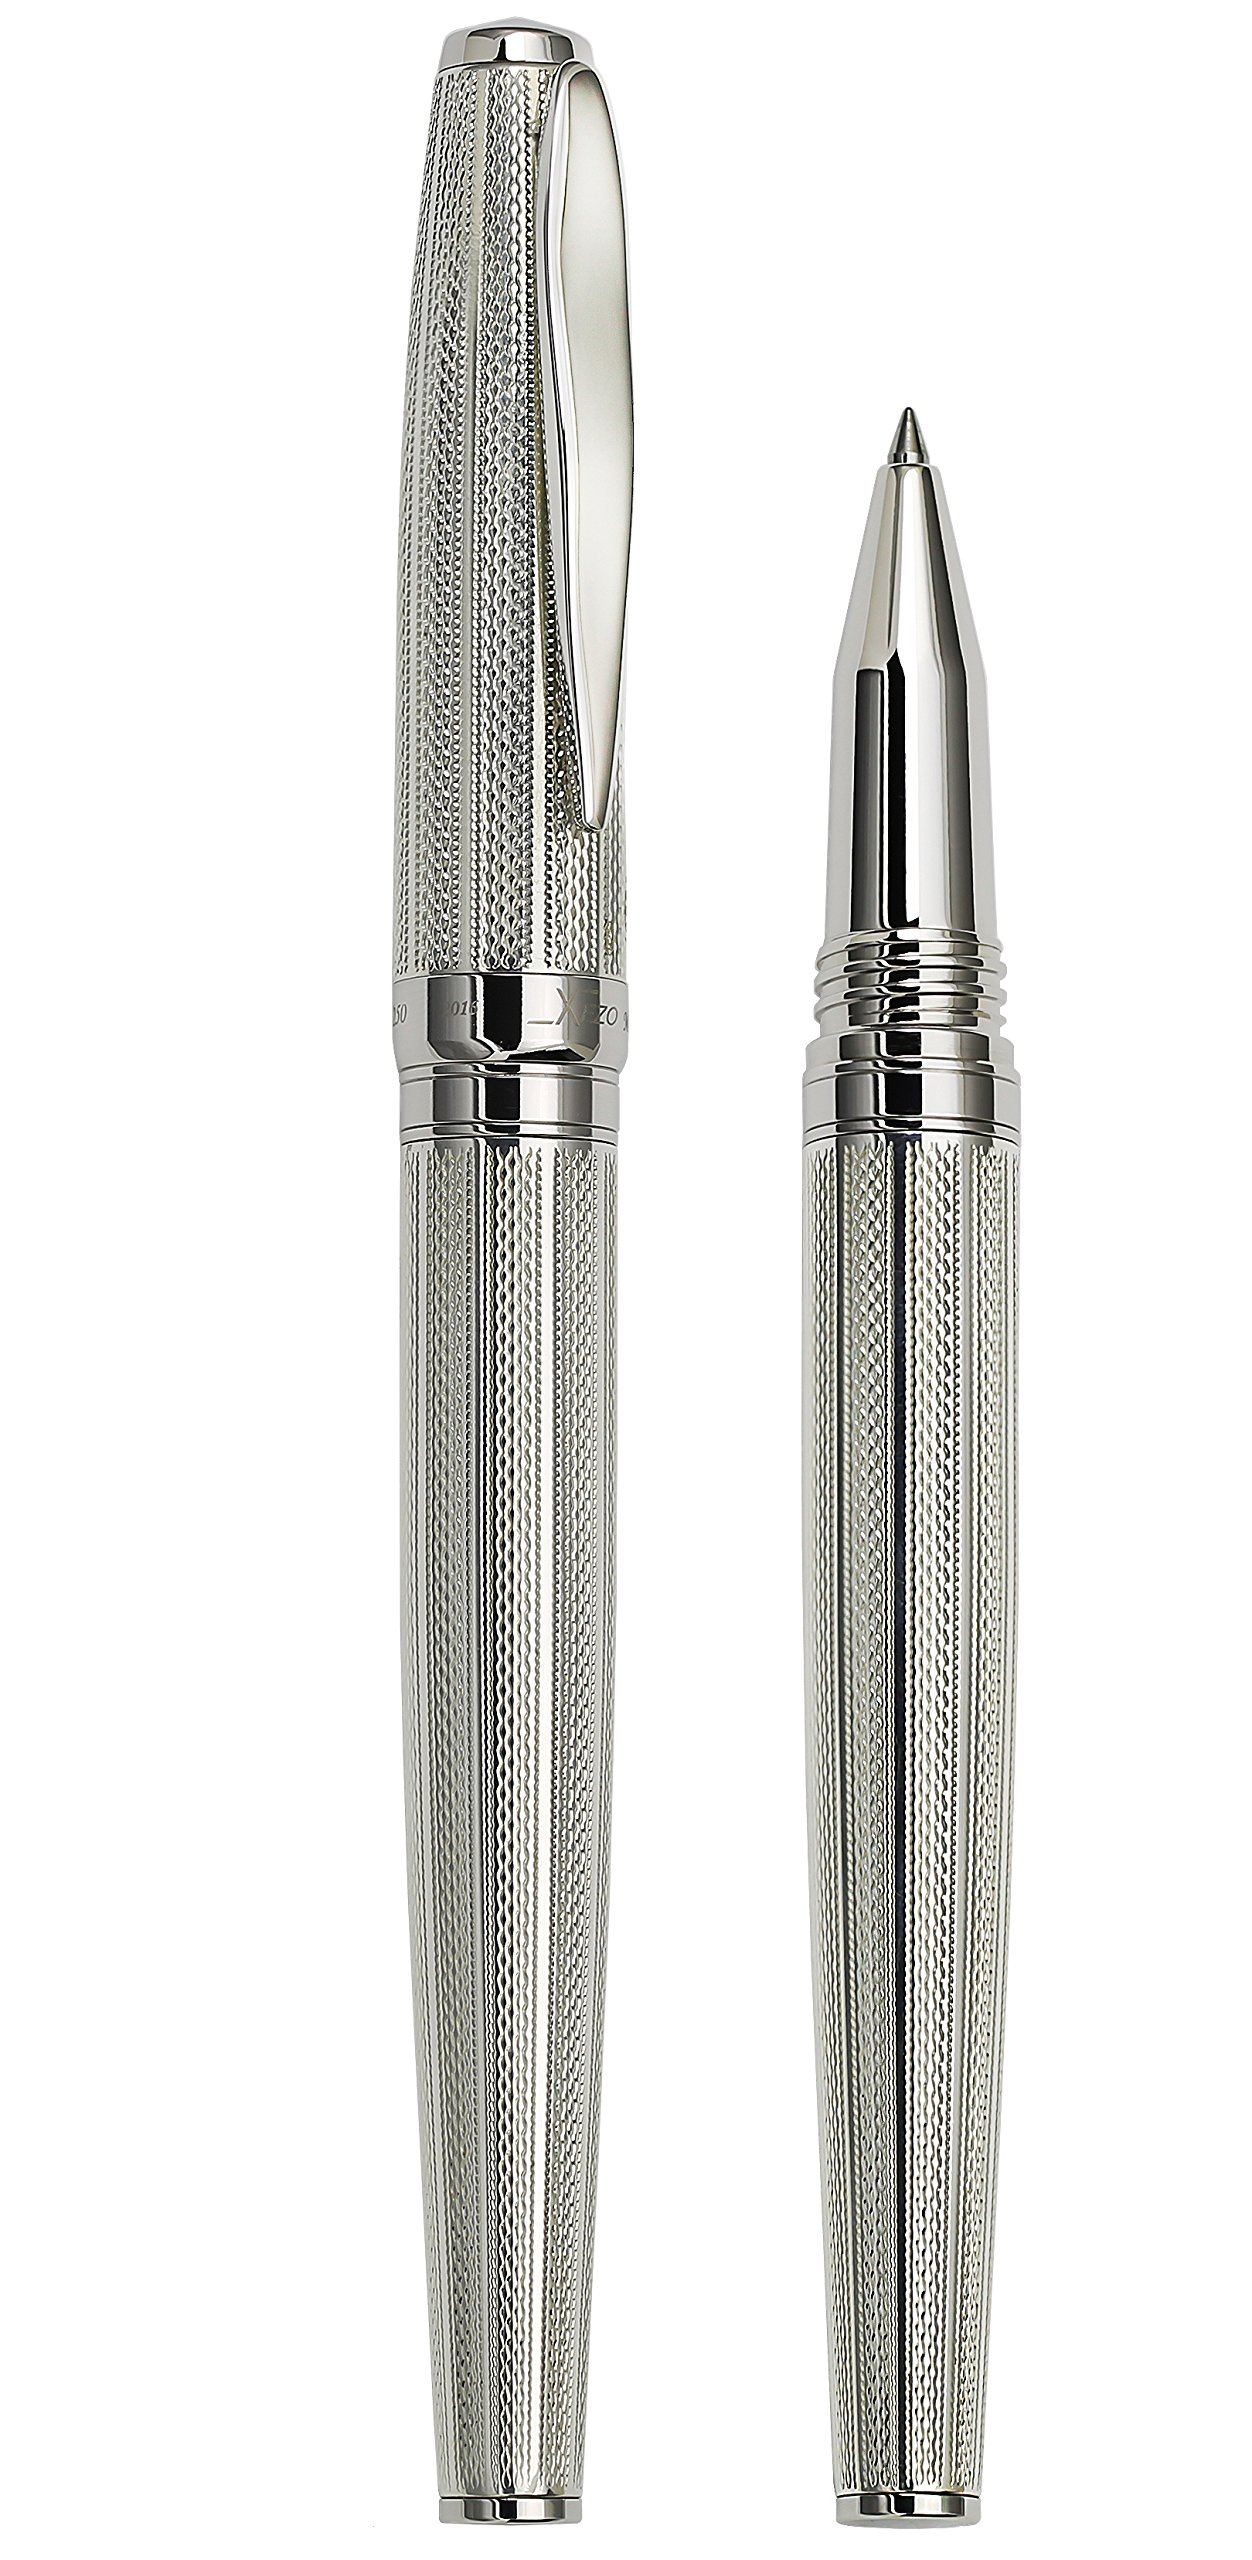 Xezo Solid 925 Sterling Silver Serialized Fine Rollerball Pen with Screw-On Cap (Maestro 925 Sterling Silver R-1) by Xezo (Image #2)